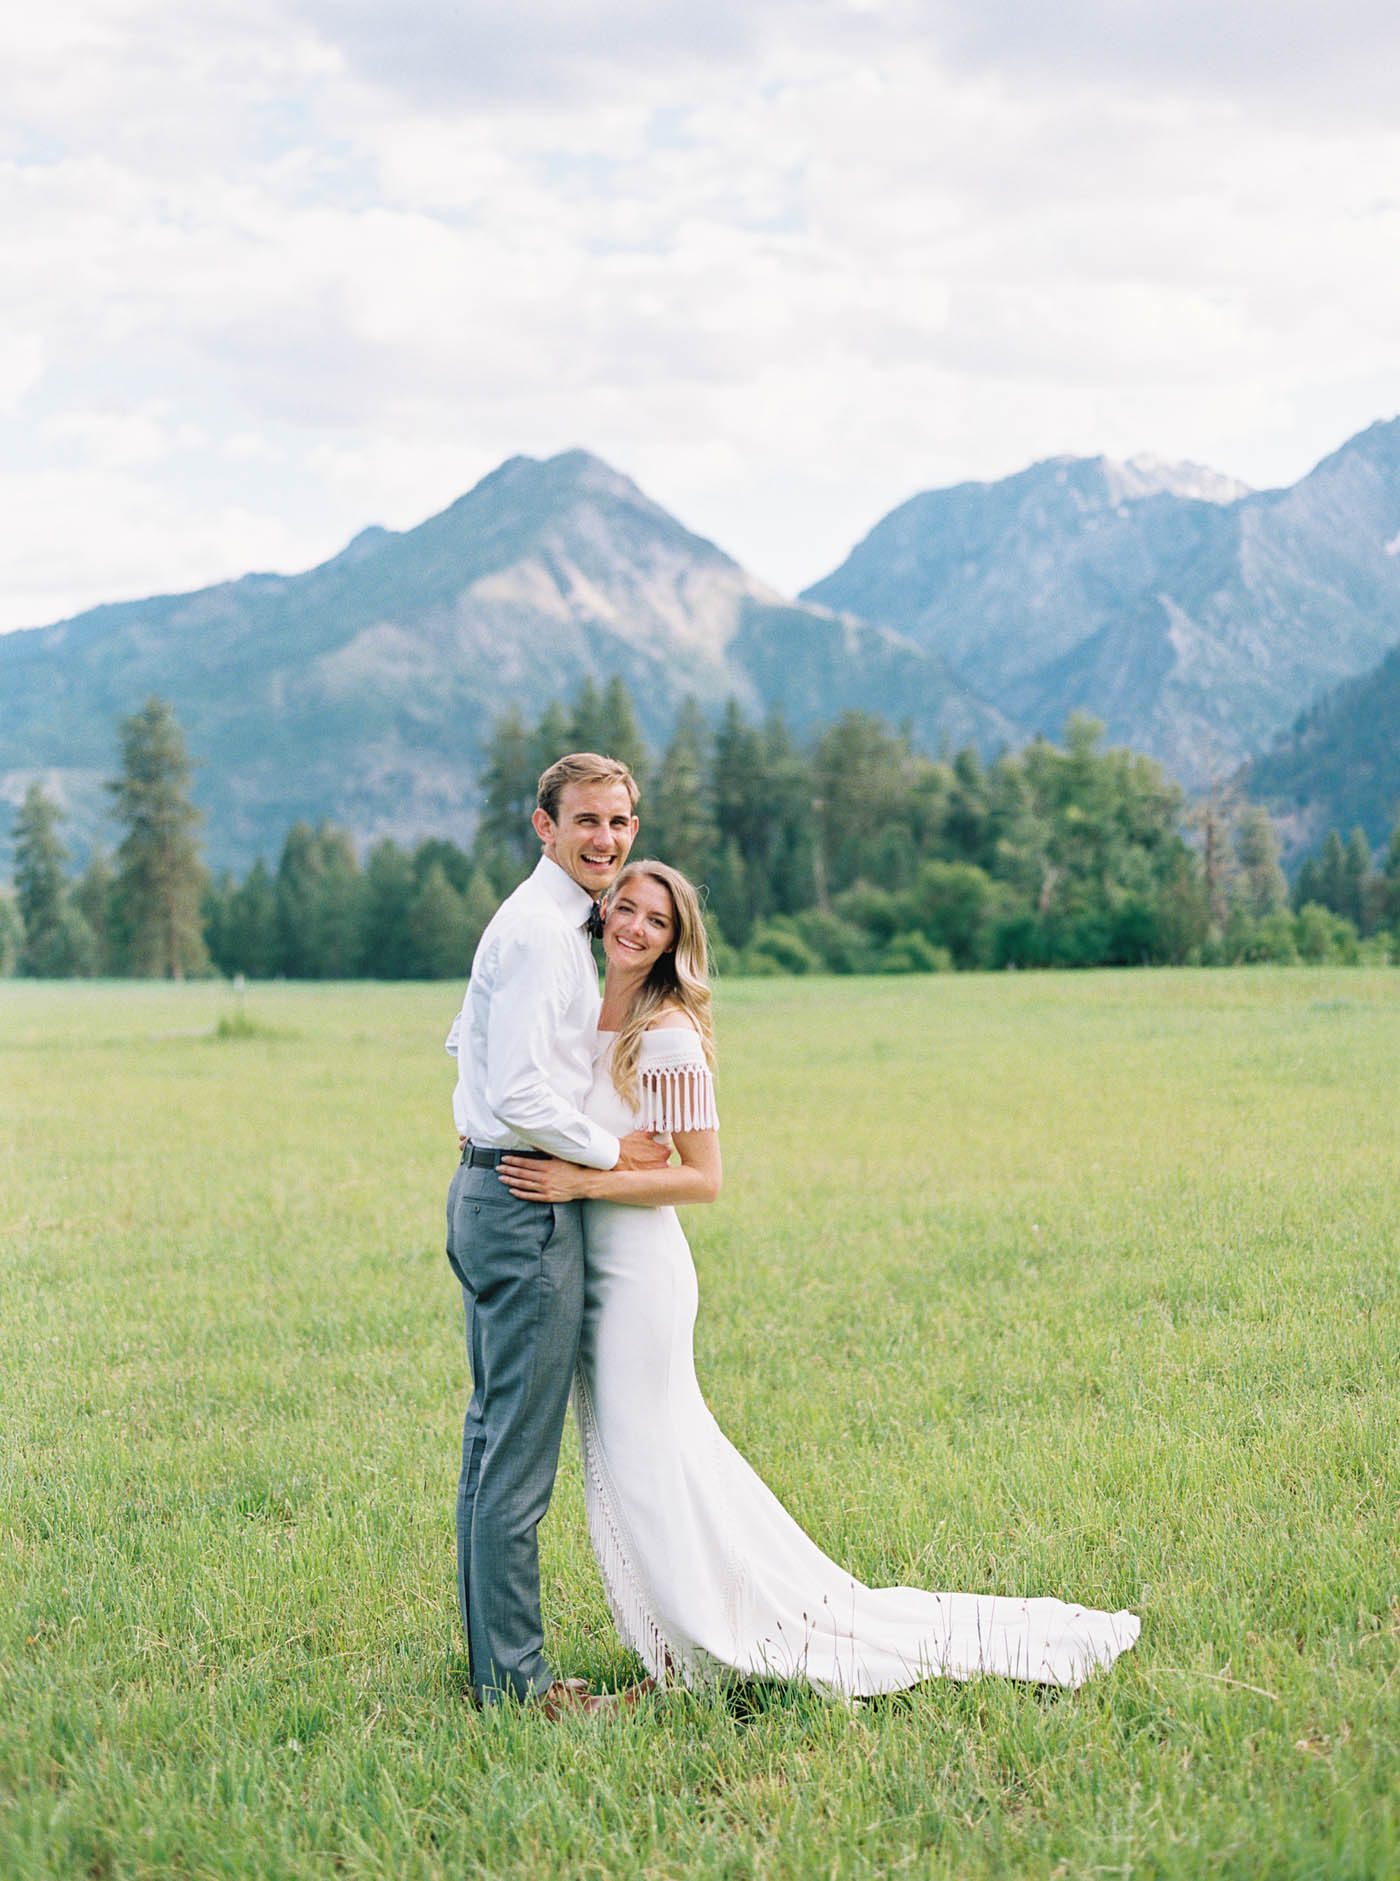 Heartfelt, candid wedding in Leavenworth captured on film by top Pacific Northwest wedding Photographer Anna PEters